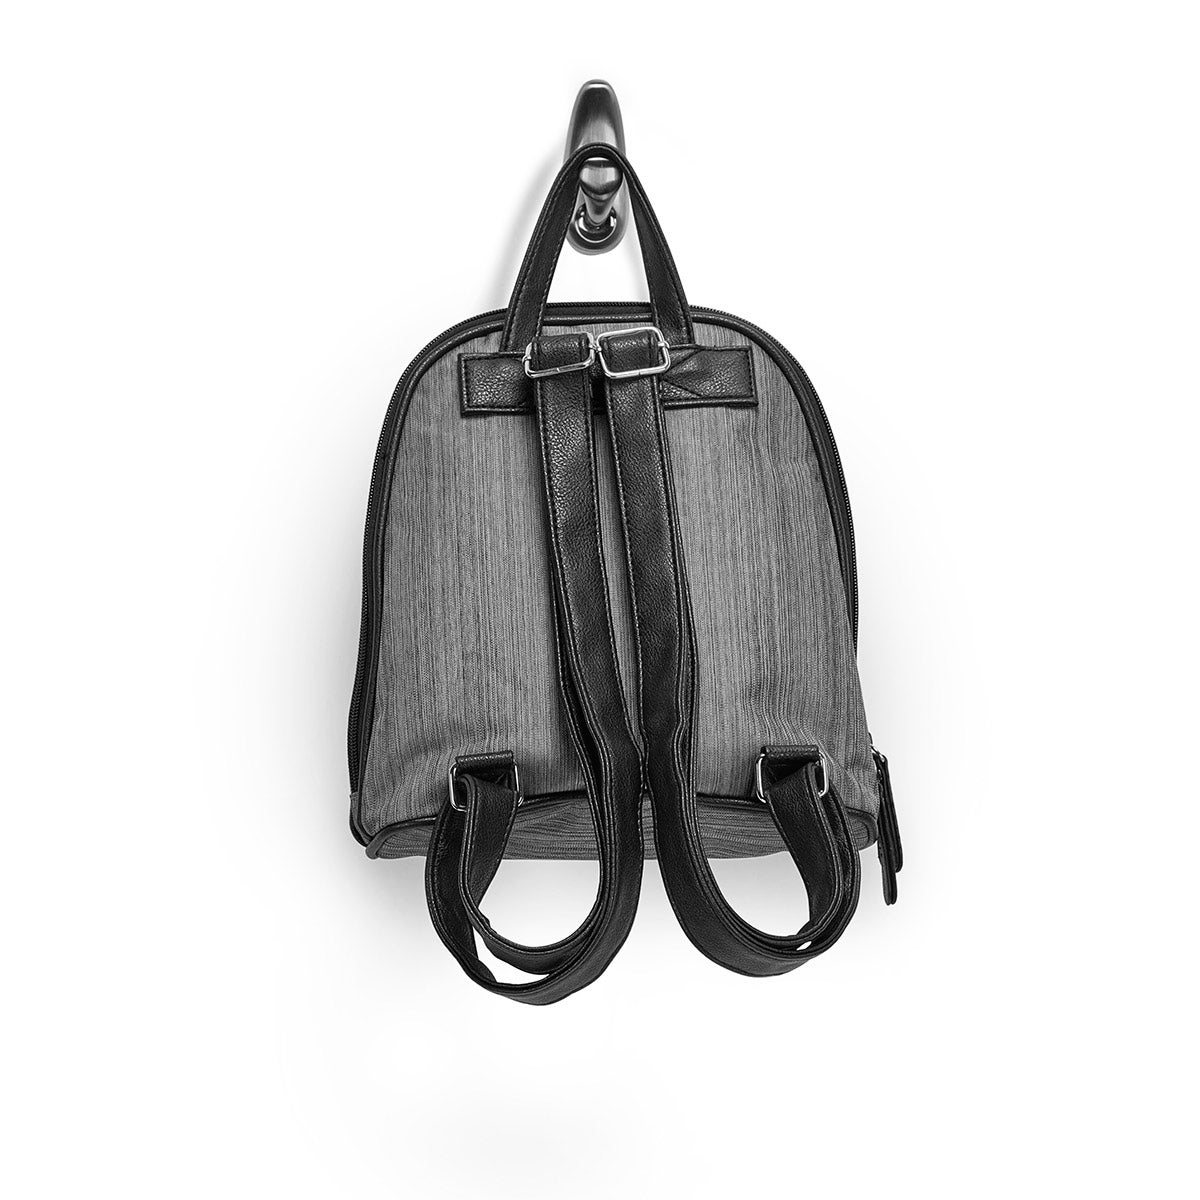 Lds gry double compartment mini backpack